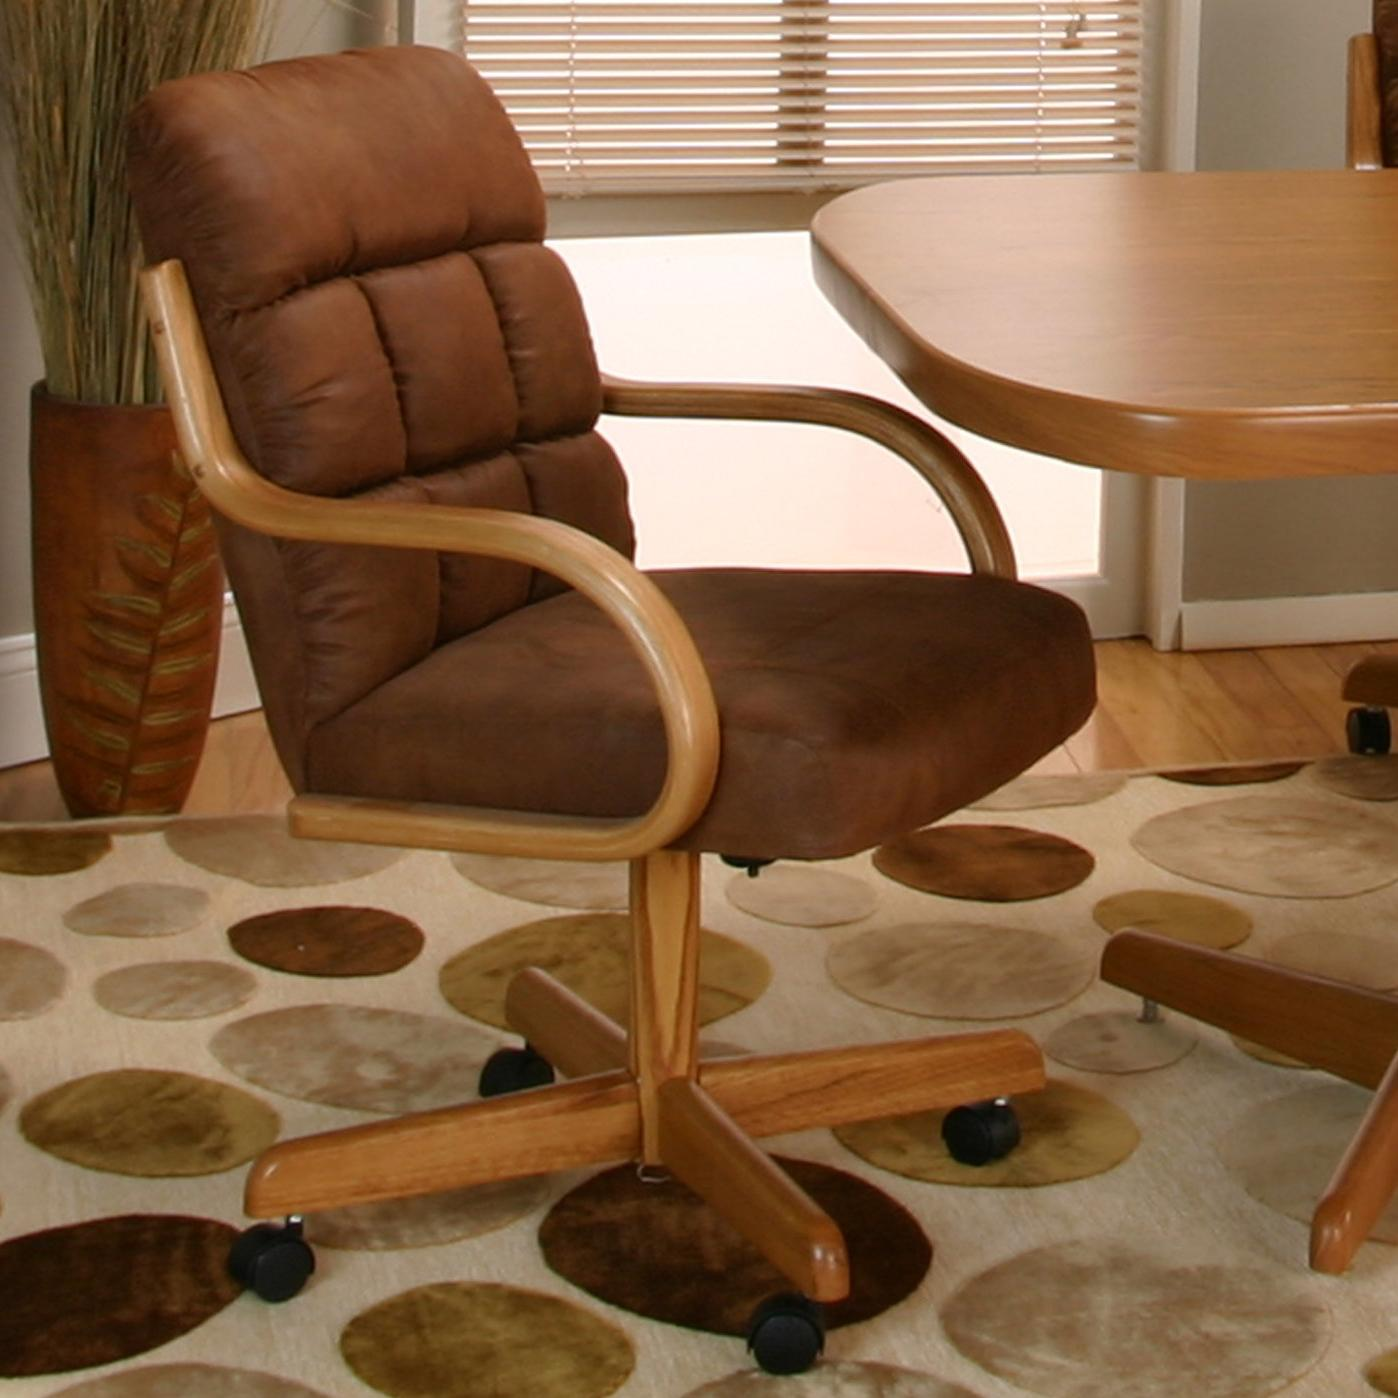 Cramco Motion - Atwood Cocoa Microsuede Chair by Cramco, Inc at Johnny Janosik